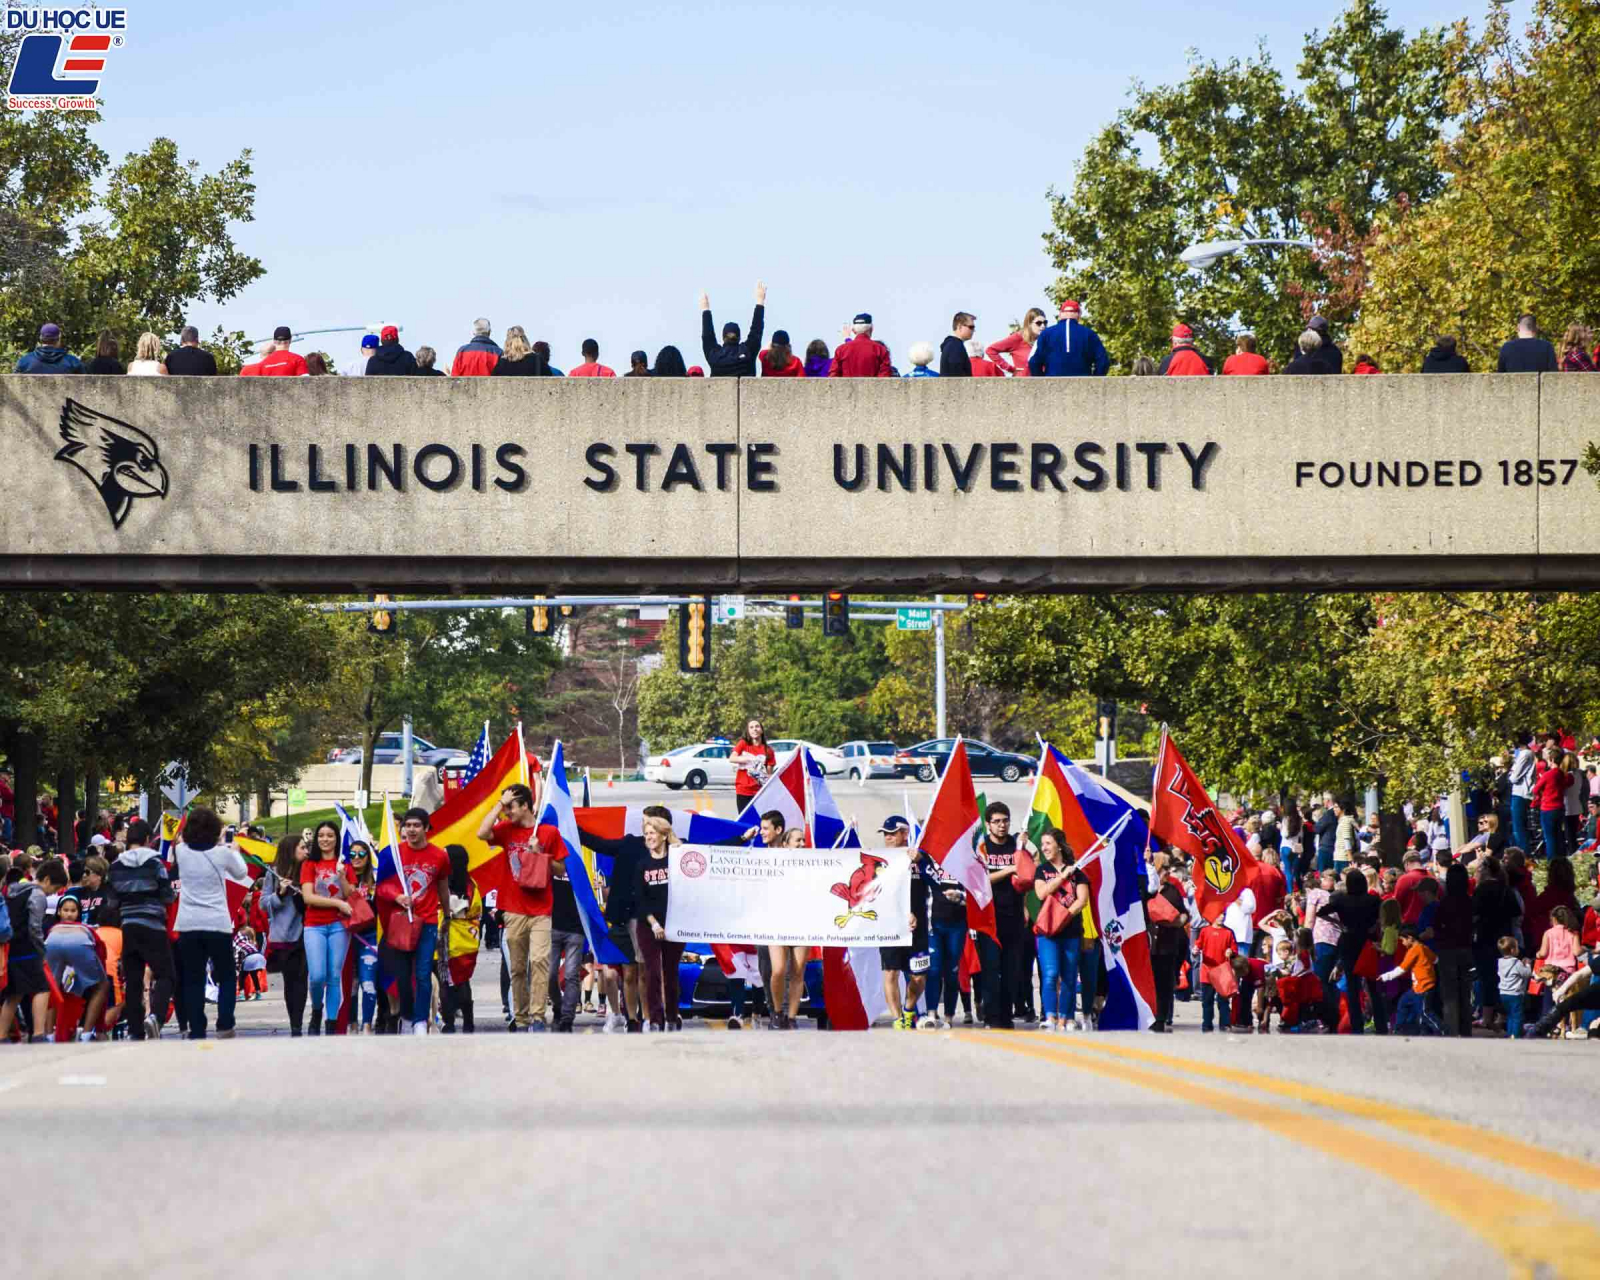 Illinois State University - Du học UE 5